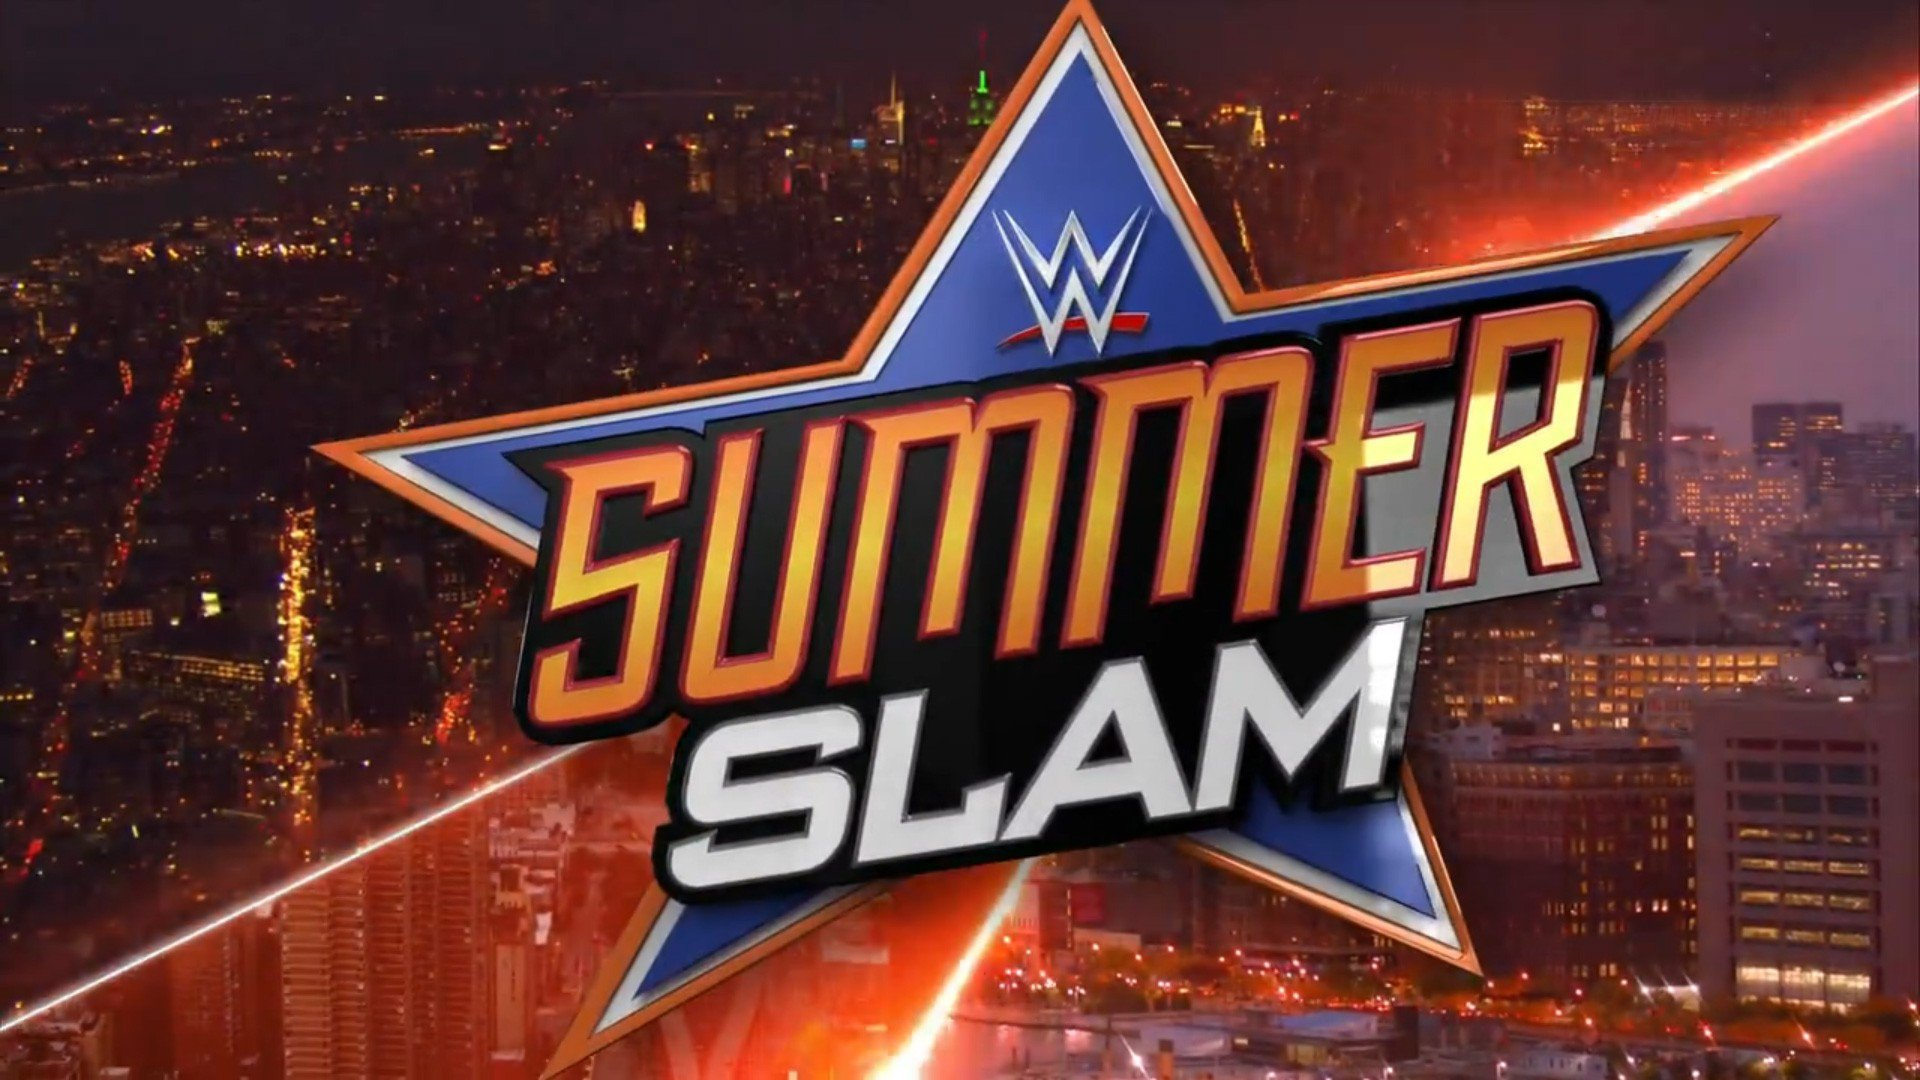 Wwe Logo Hd Wallpaper What To Look Out For At This Year S Wwe Summerslam Event